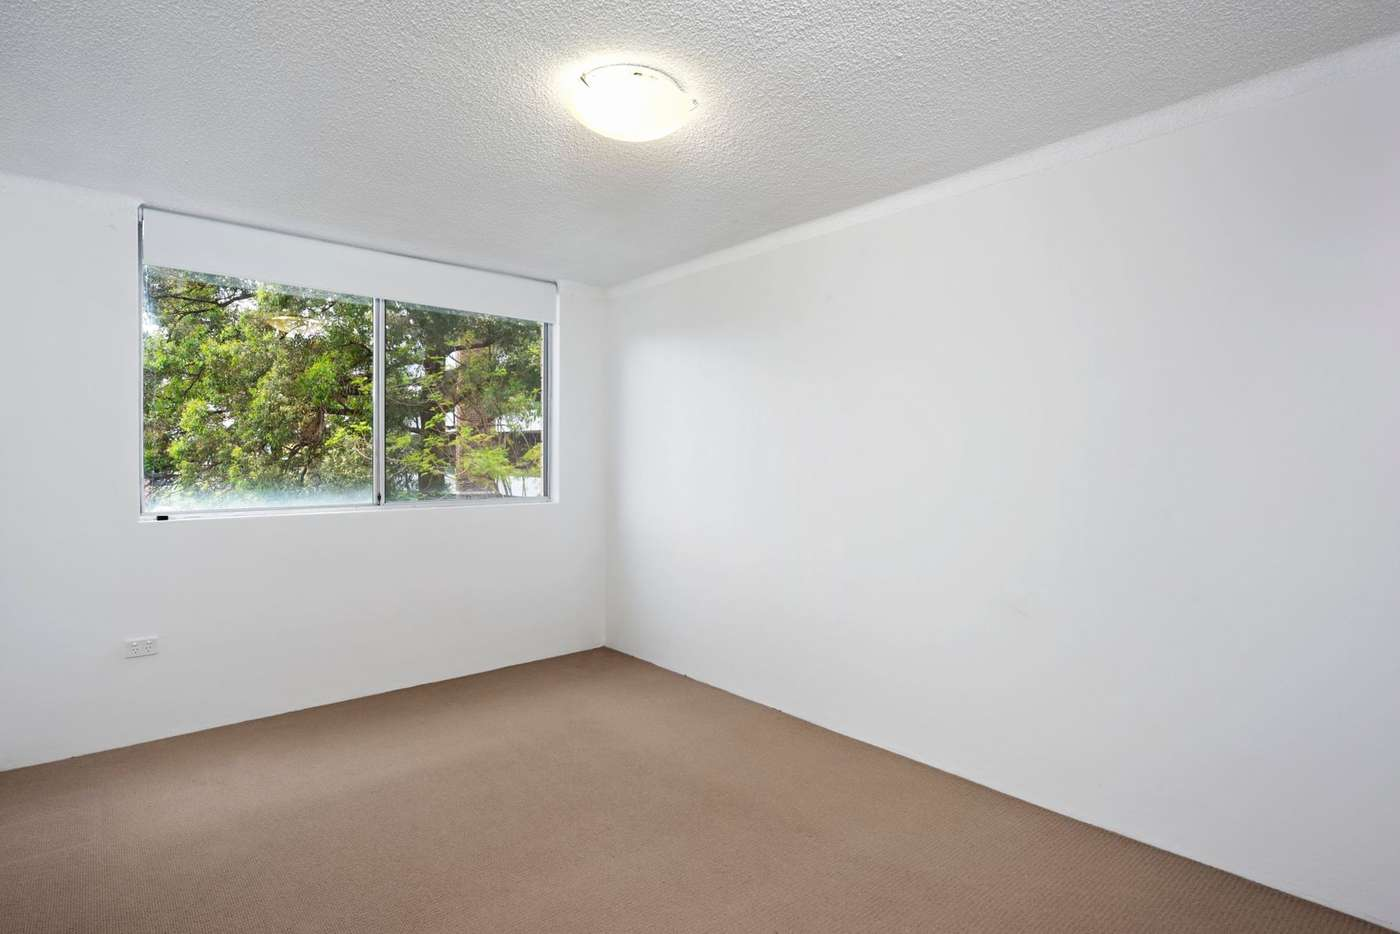 Sixth view of Homely apartment listing, 10/88 Albert Avenue, Chatswood NSW 2067